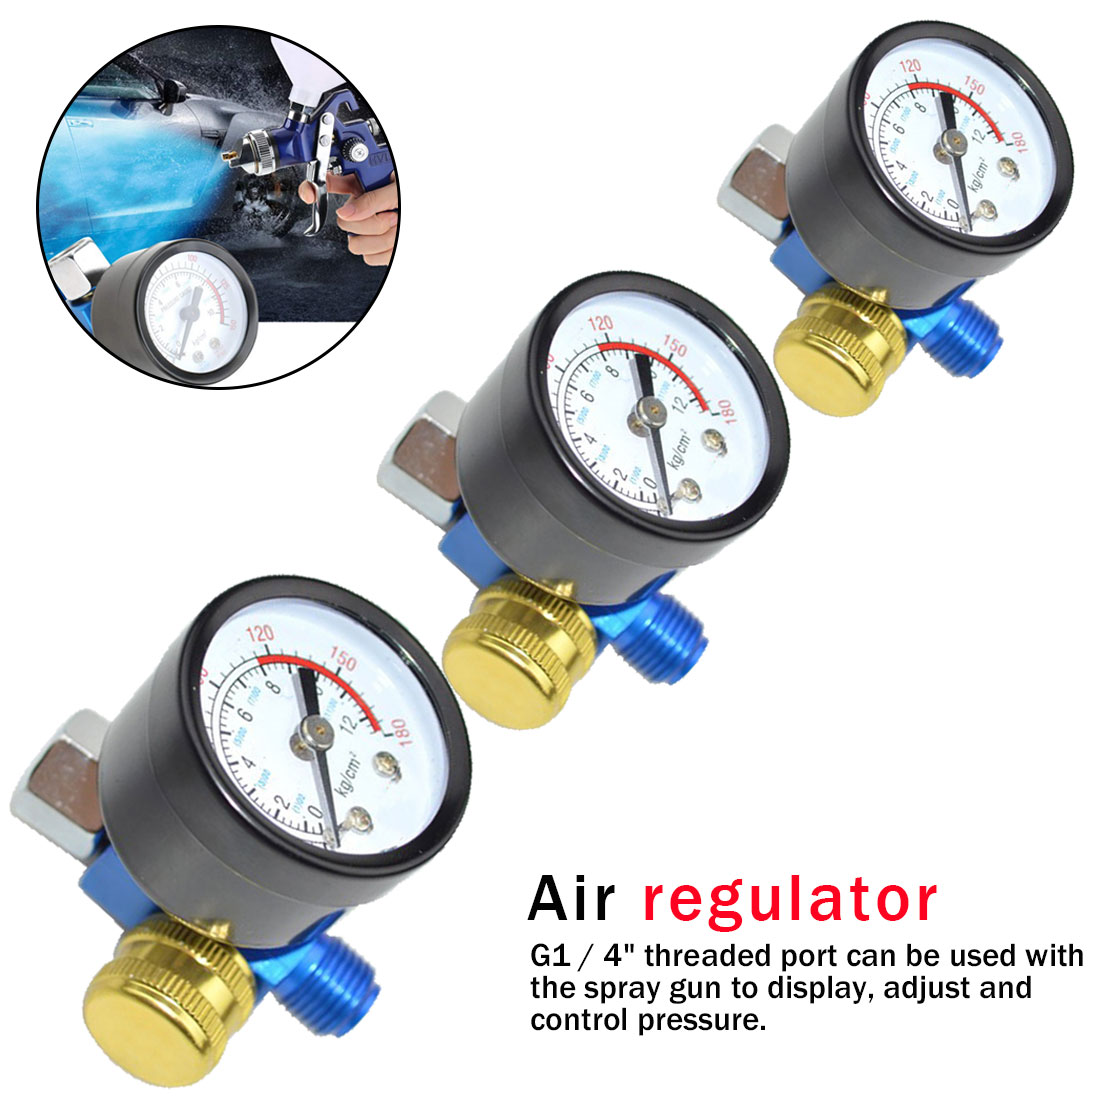 AETool HVLP Spary Gun Regulator Air Pressure Regulator Auto Paint Air Regulator Spray Gun Adjustable Regulating Gauge Air Tool